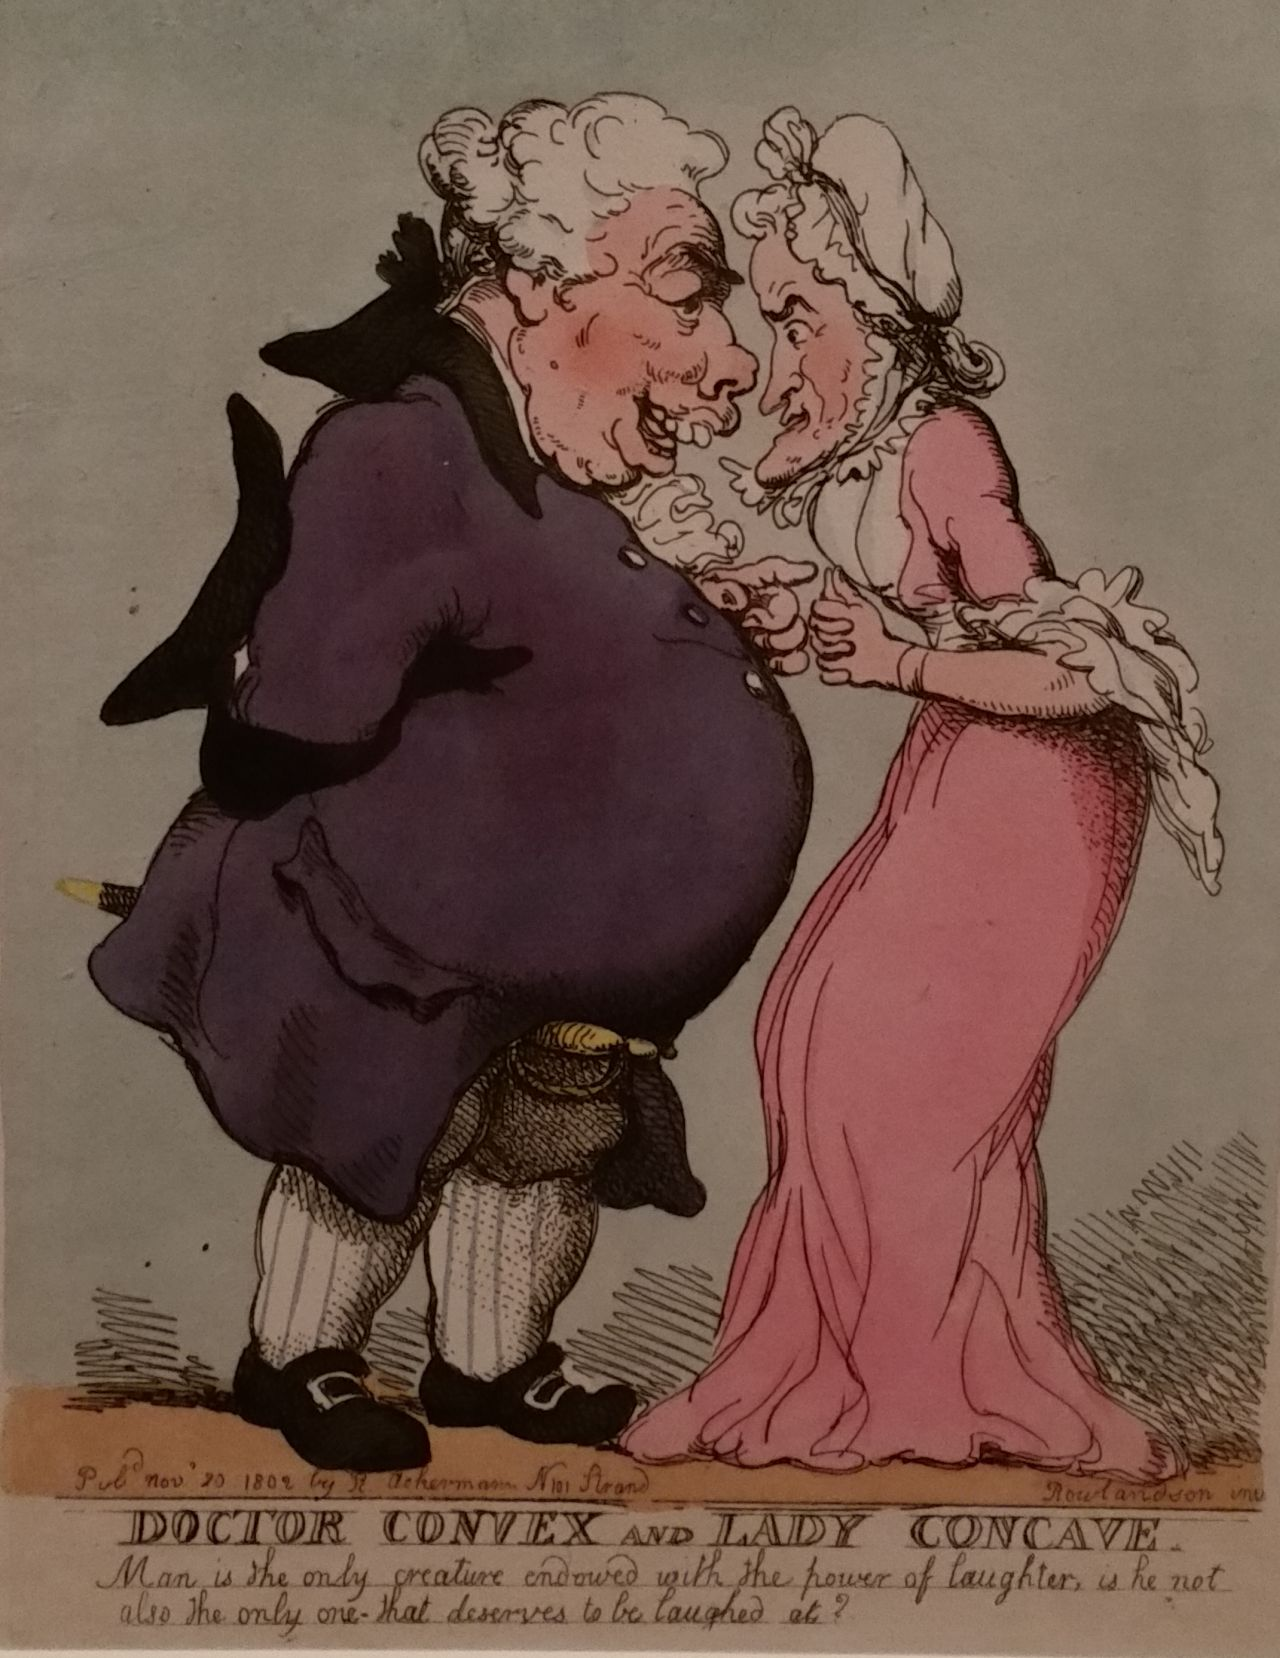 """Thomas Rowlandson, """"Doctor Convex and Lady Concave"""" (1802), hand colored etching"""